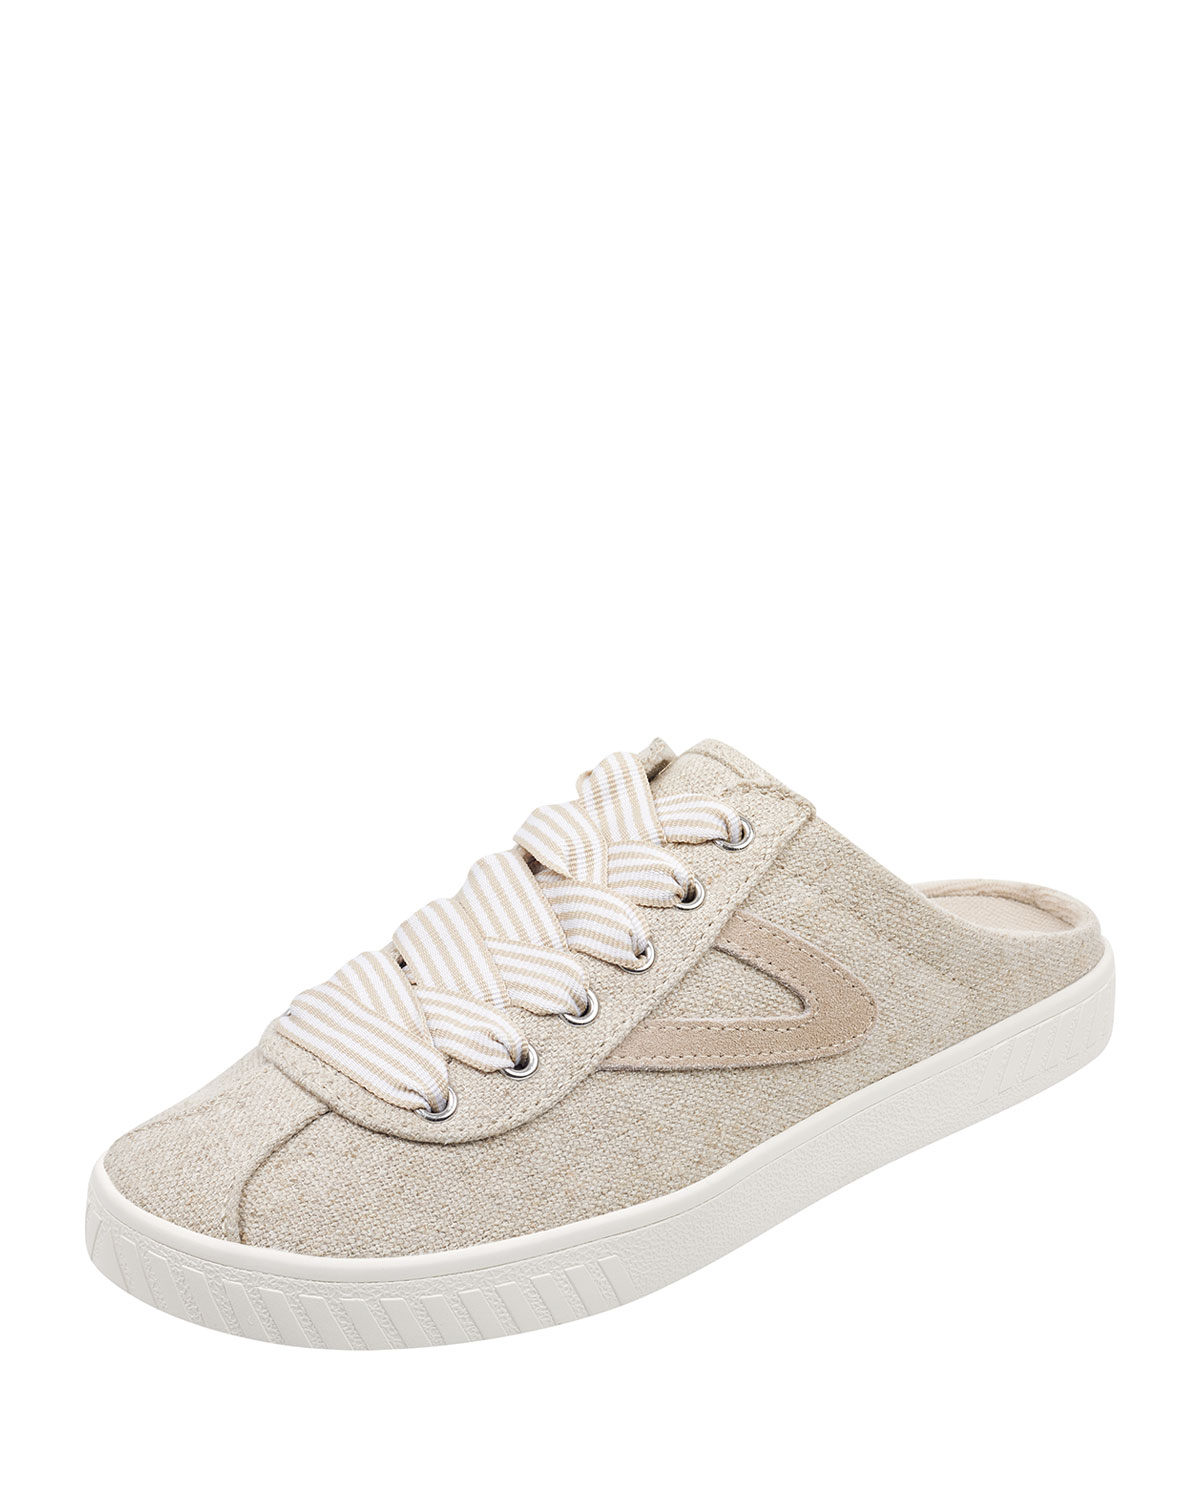 Tretorn CAM SLIP-ON CANVAS SNEAKERS